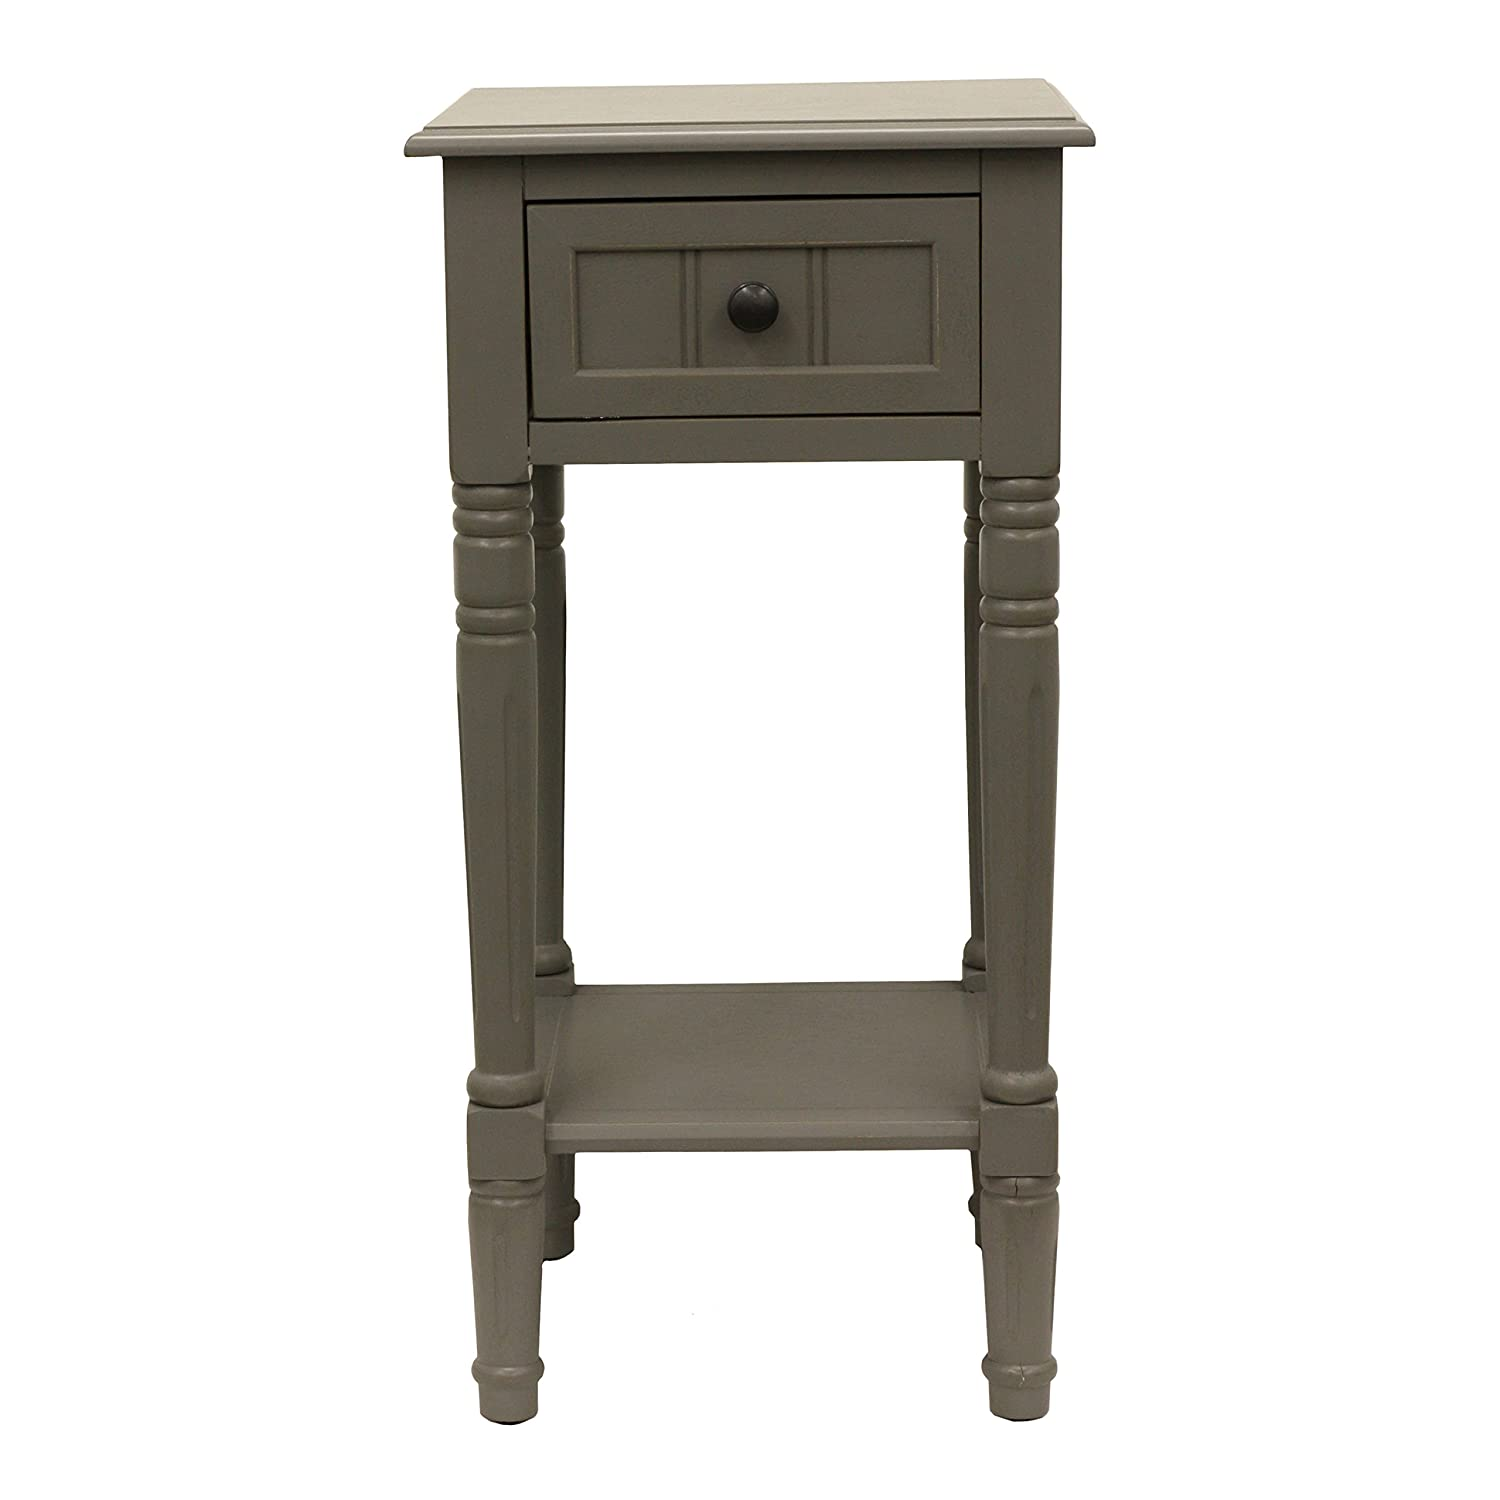 Décor Therapy FR1861 End Table, Eased Edge Gray